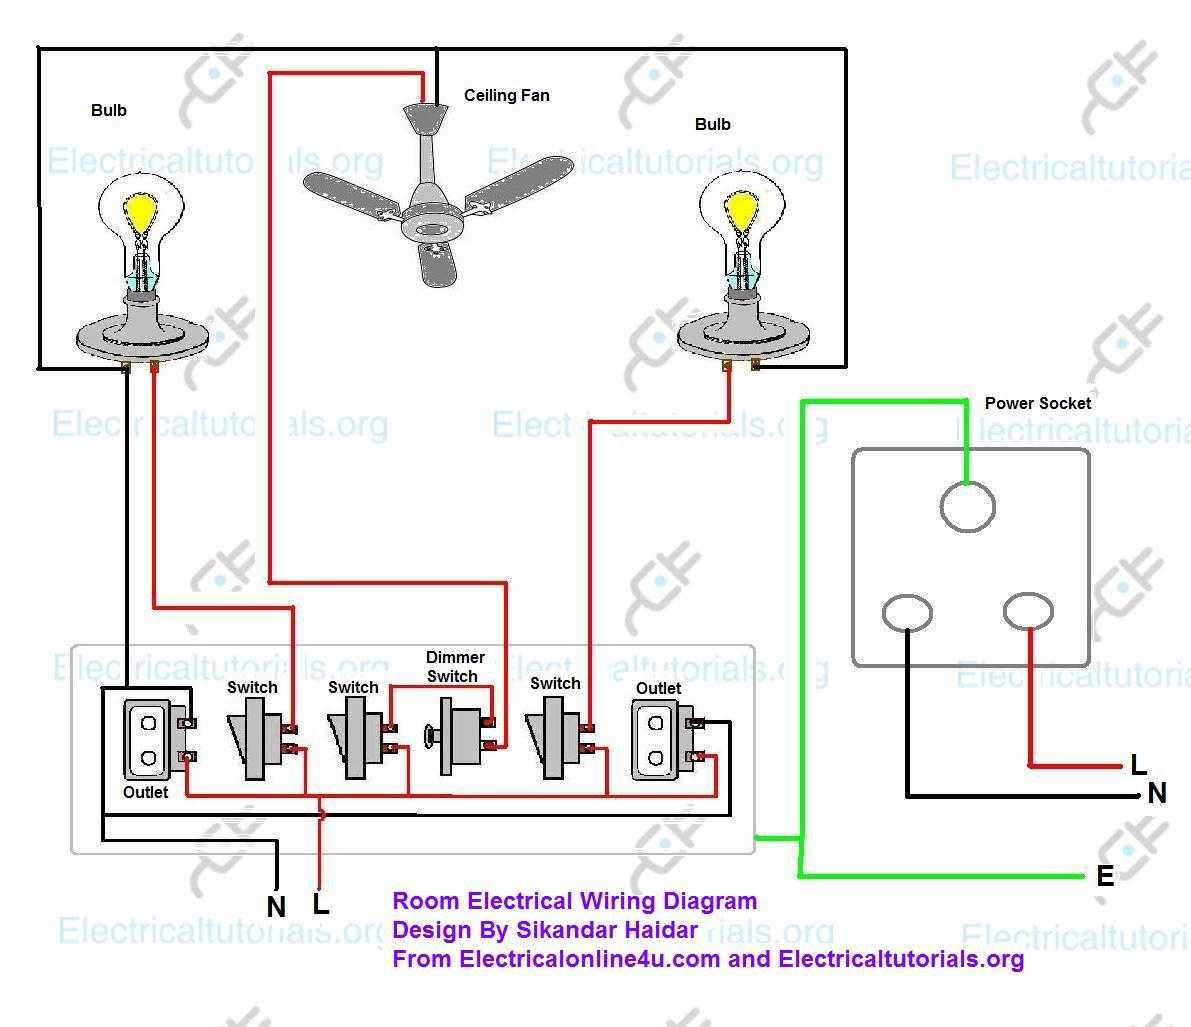 electric circuit drawing at getdrawings com free for personal use rh getdrawings com basic home electrical wiring tutorial basic home wiring tutorial